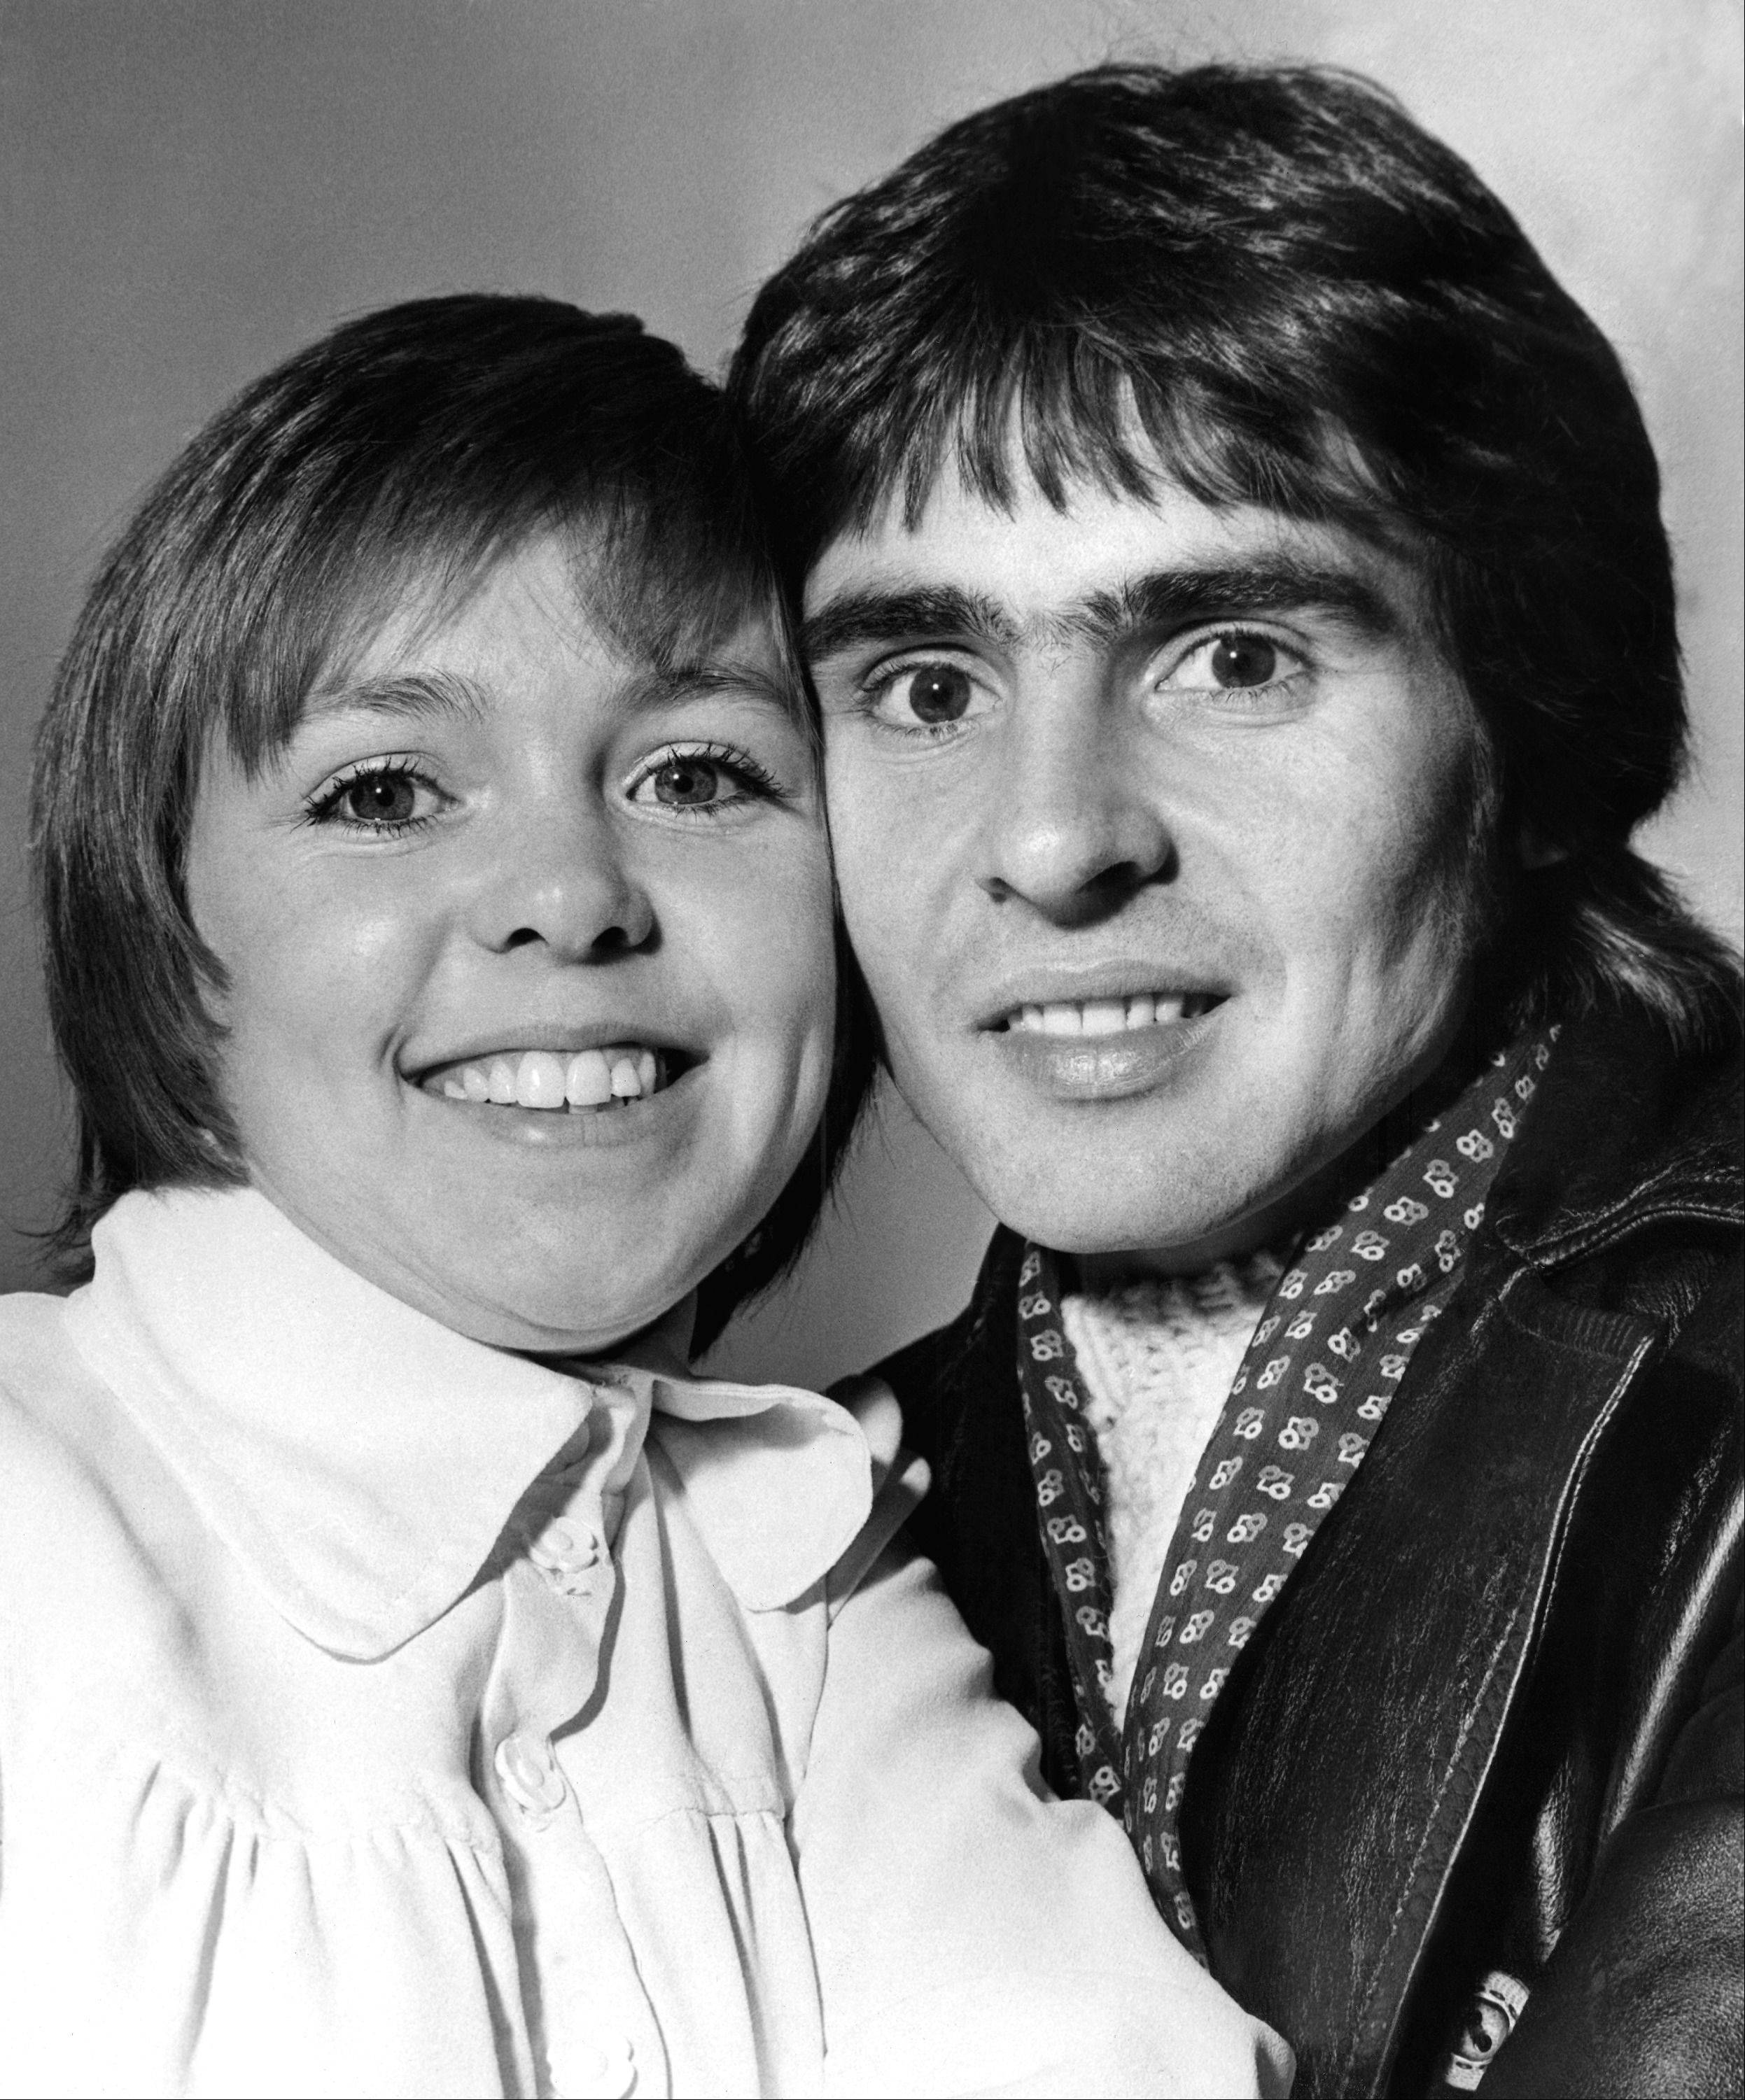 "Davy Jones, lead of the former Pop group, The Monkees. With him, is his newest leading lady, Wendy Padbury, aged 24 from Stratford on Avon and Former Star of the TV series, ""Dr Who"". They are pictured in London Jan. 3, 1972 prior to rehearsals for a stage play, ""Forget me not lane"" They play the parts of young lovers."